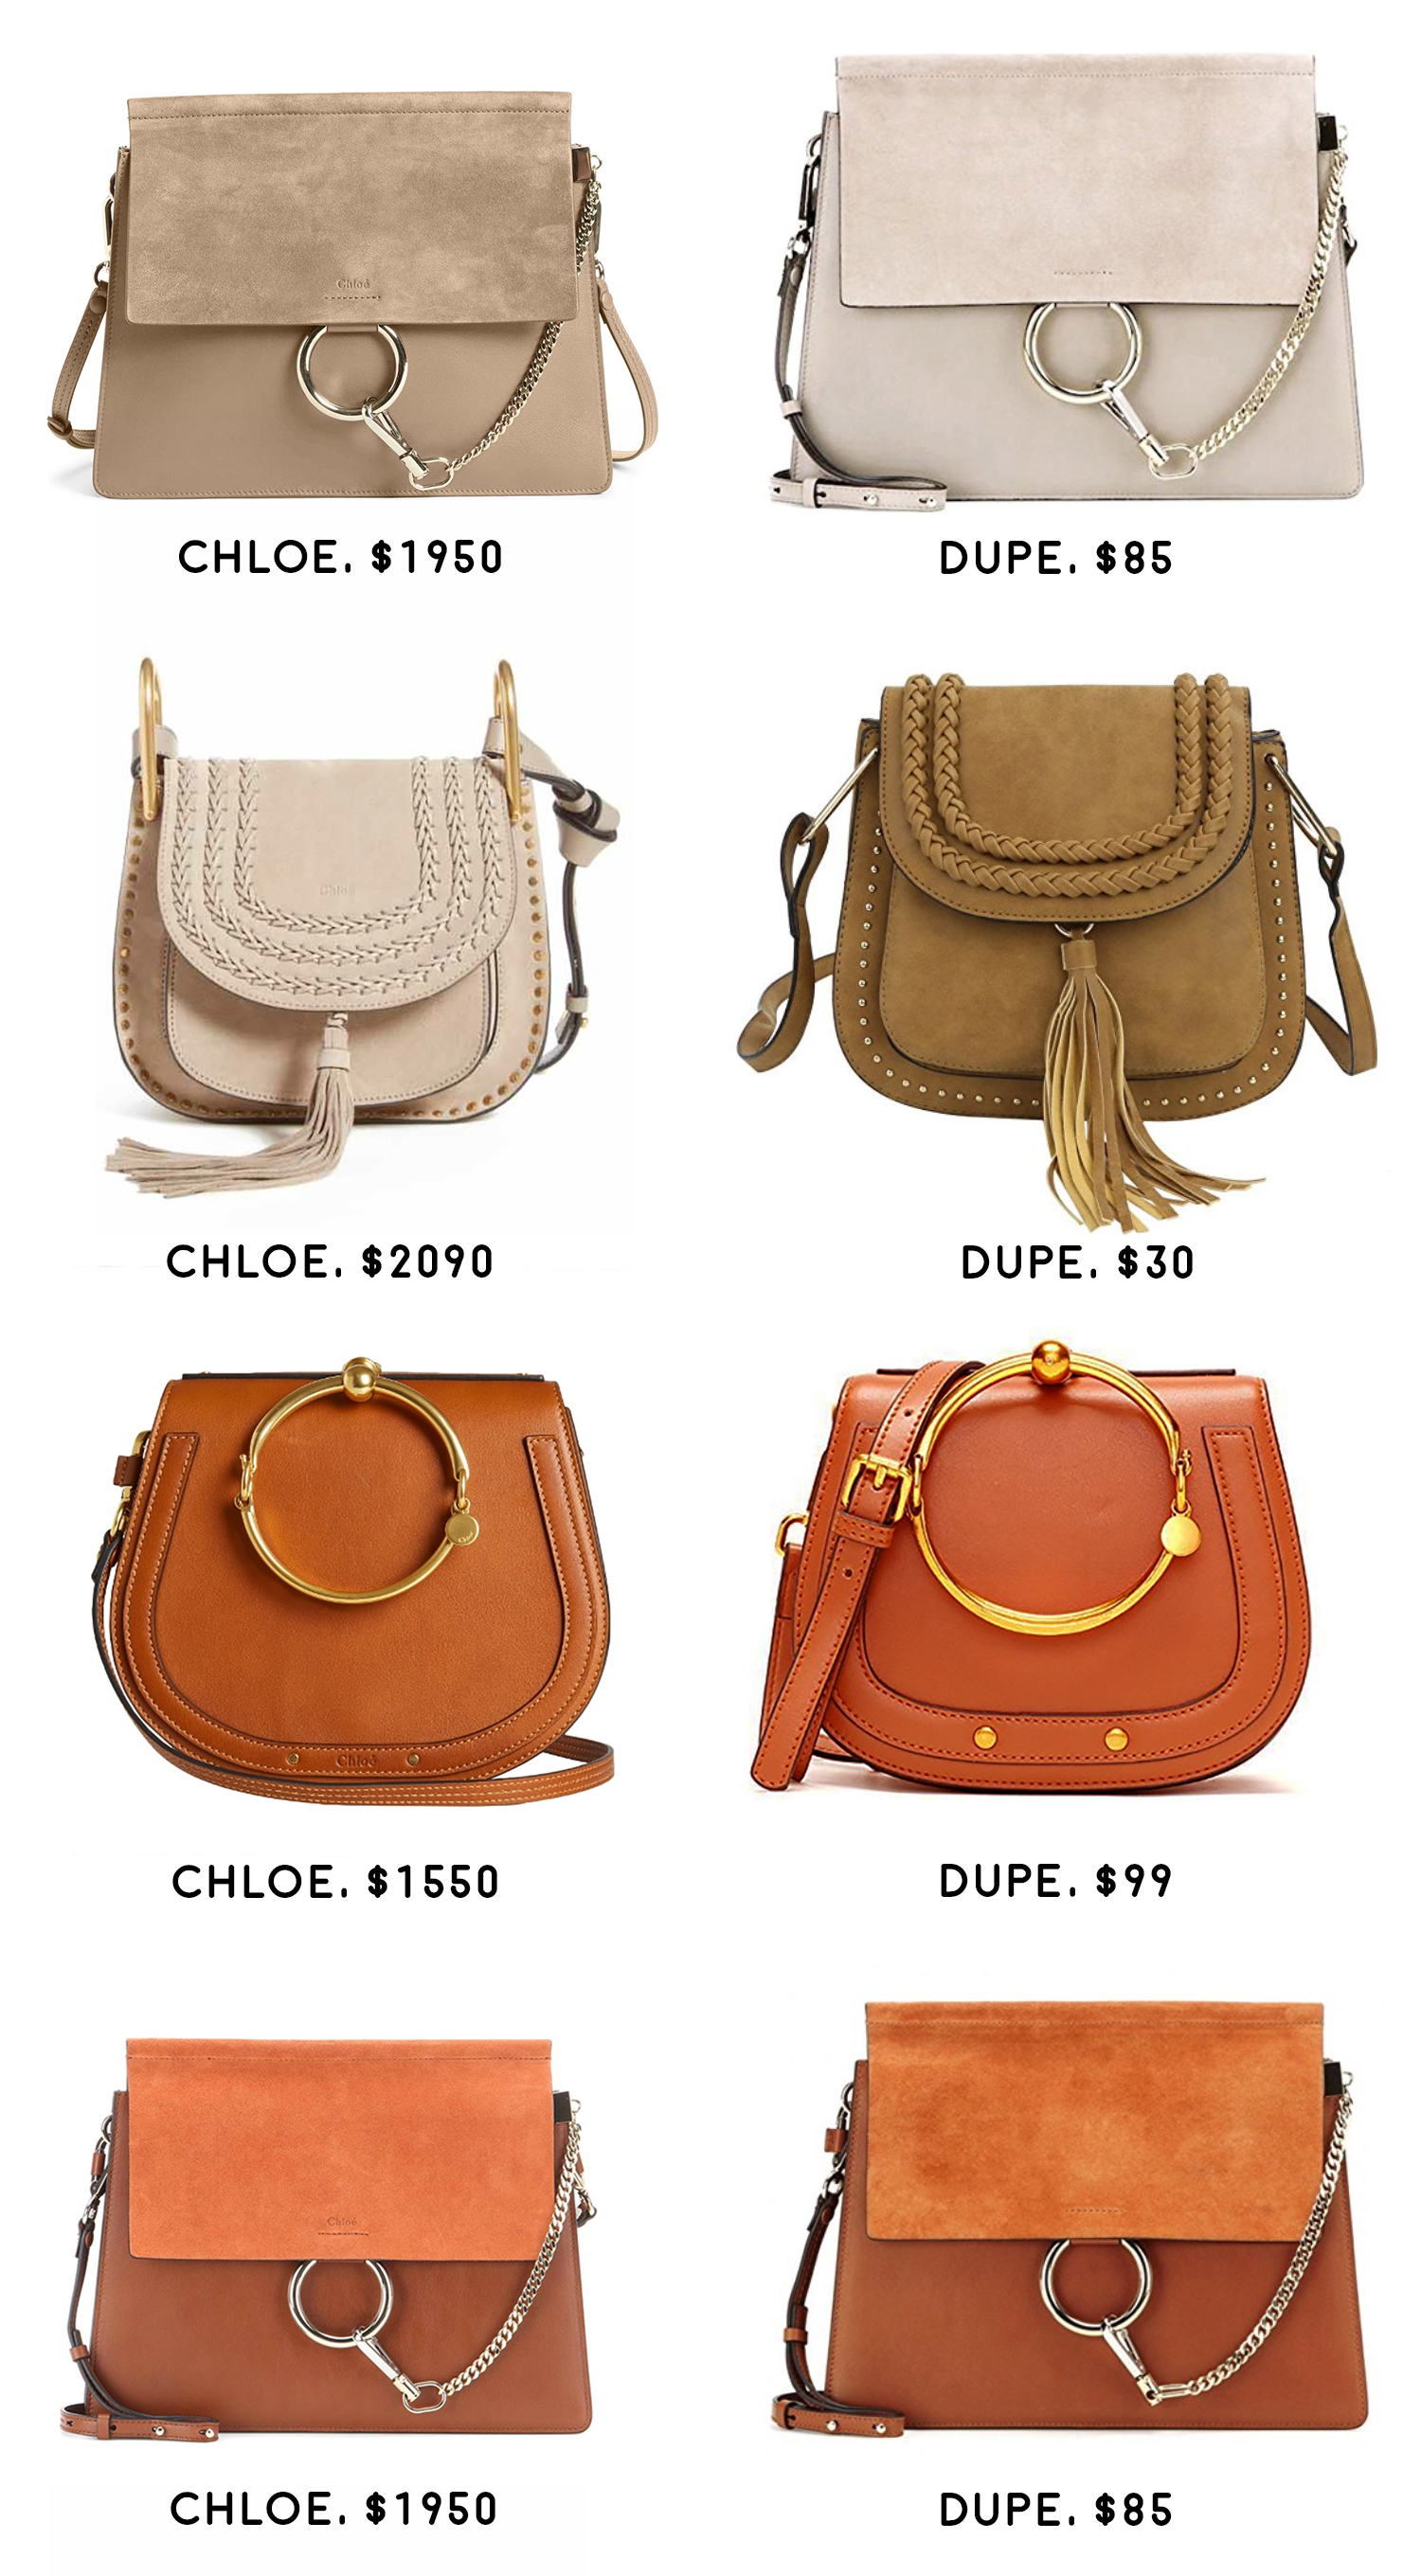 Chloé Look Alike Bags 1 4